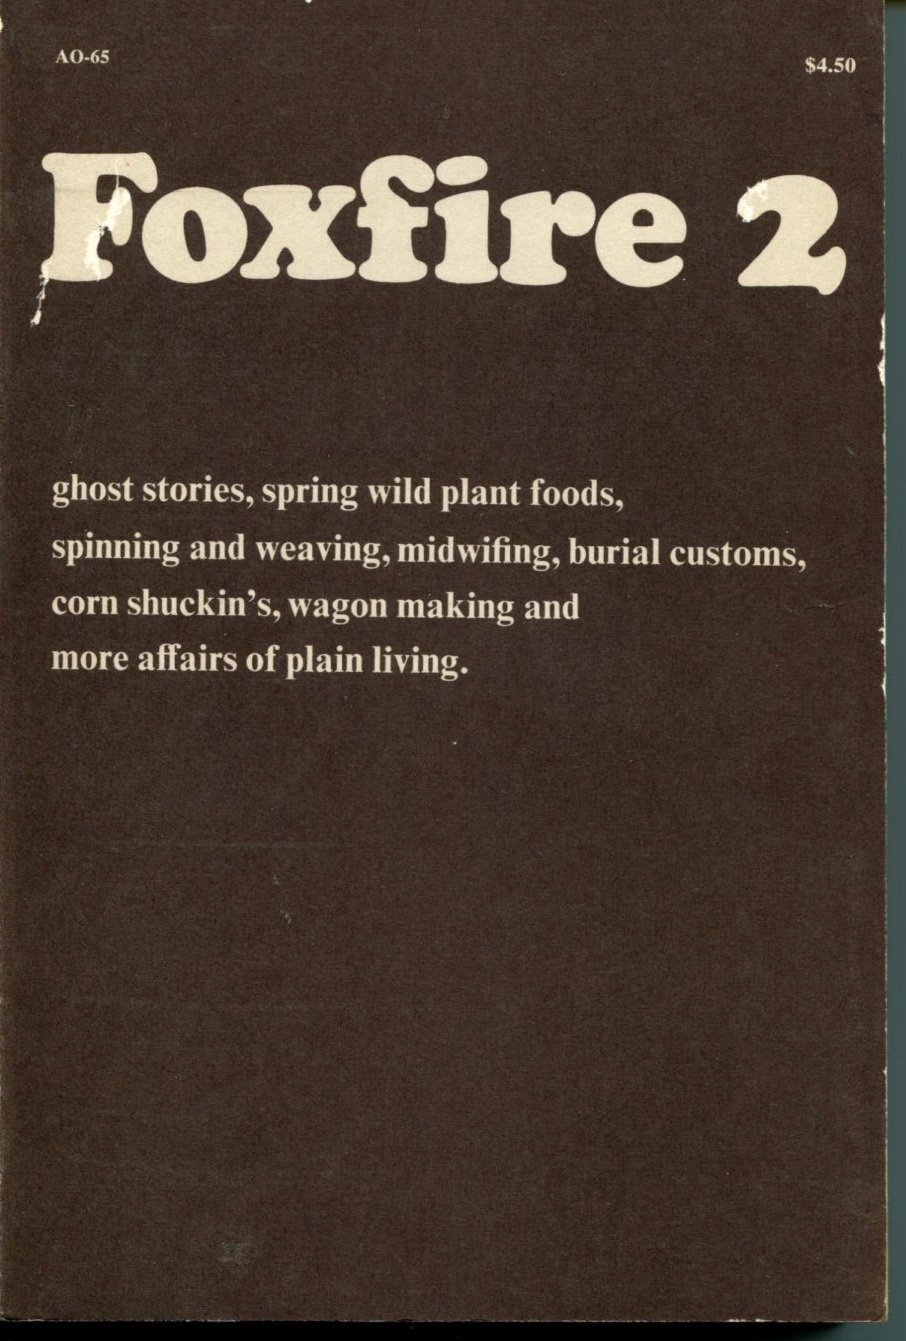 Foxfire 2 - Ghost Stories, Spring Wild Plant Foods, Spinning And Weaving, Midwifing, Burial Customs, Corn Shuckin's, Wagon Making and More Affairs of Plain Living